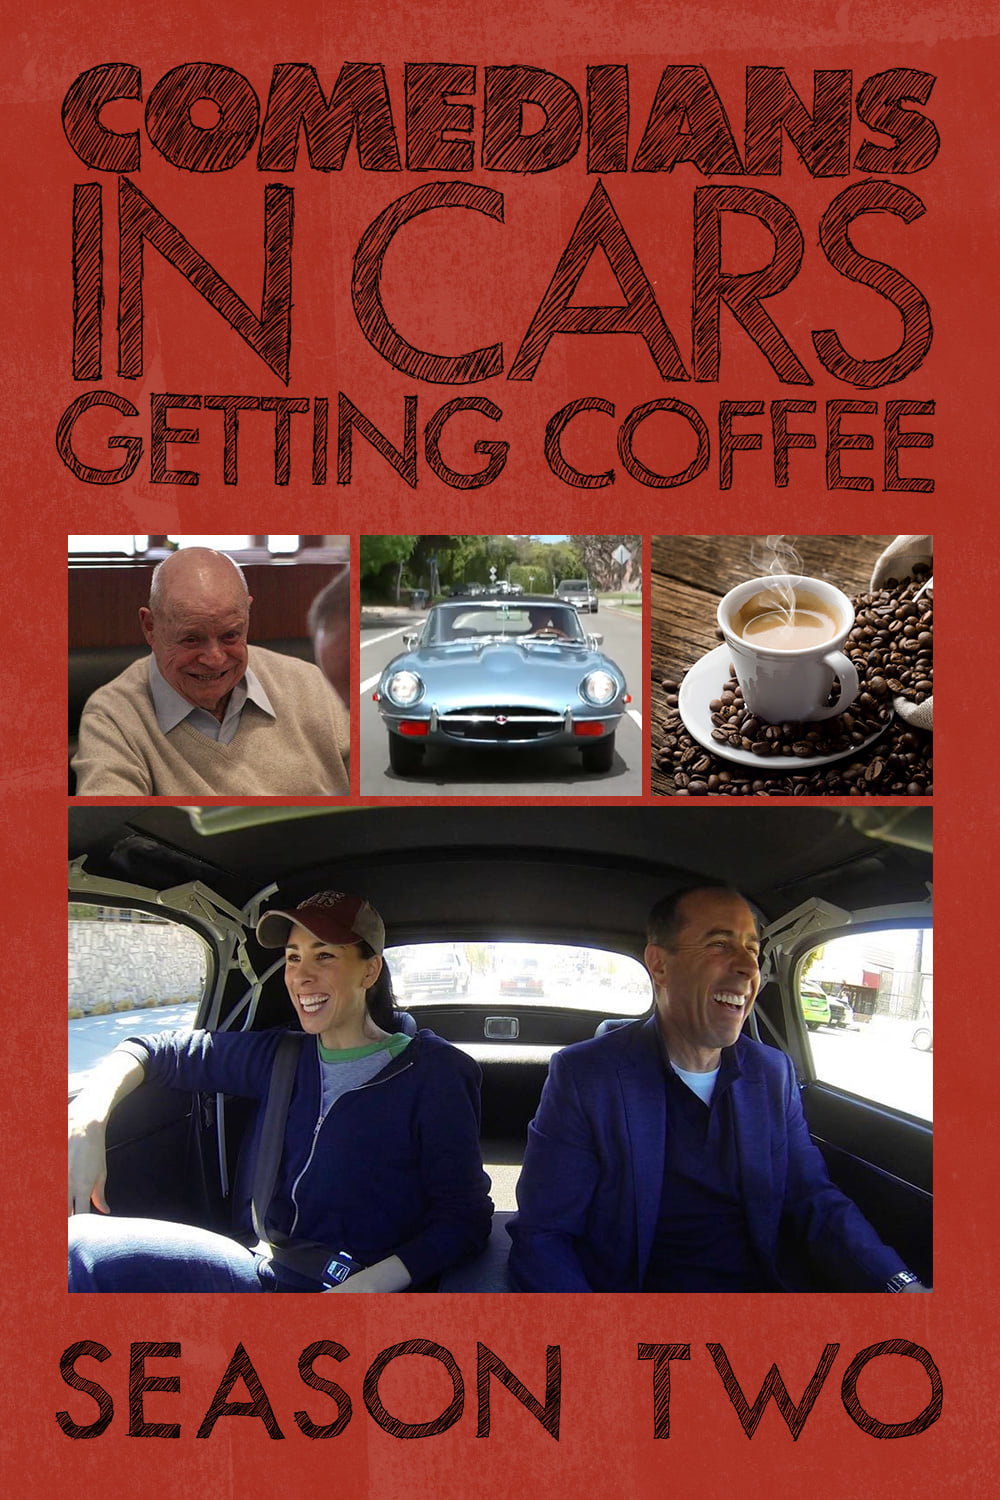 Comedians in Cars Getting Coffee Season 2